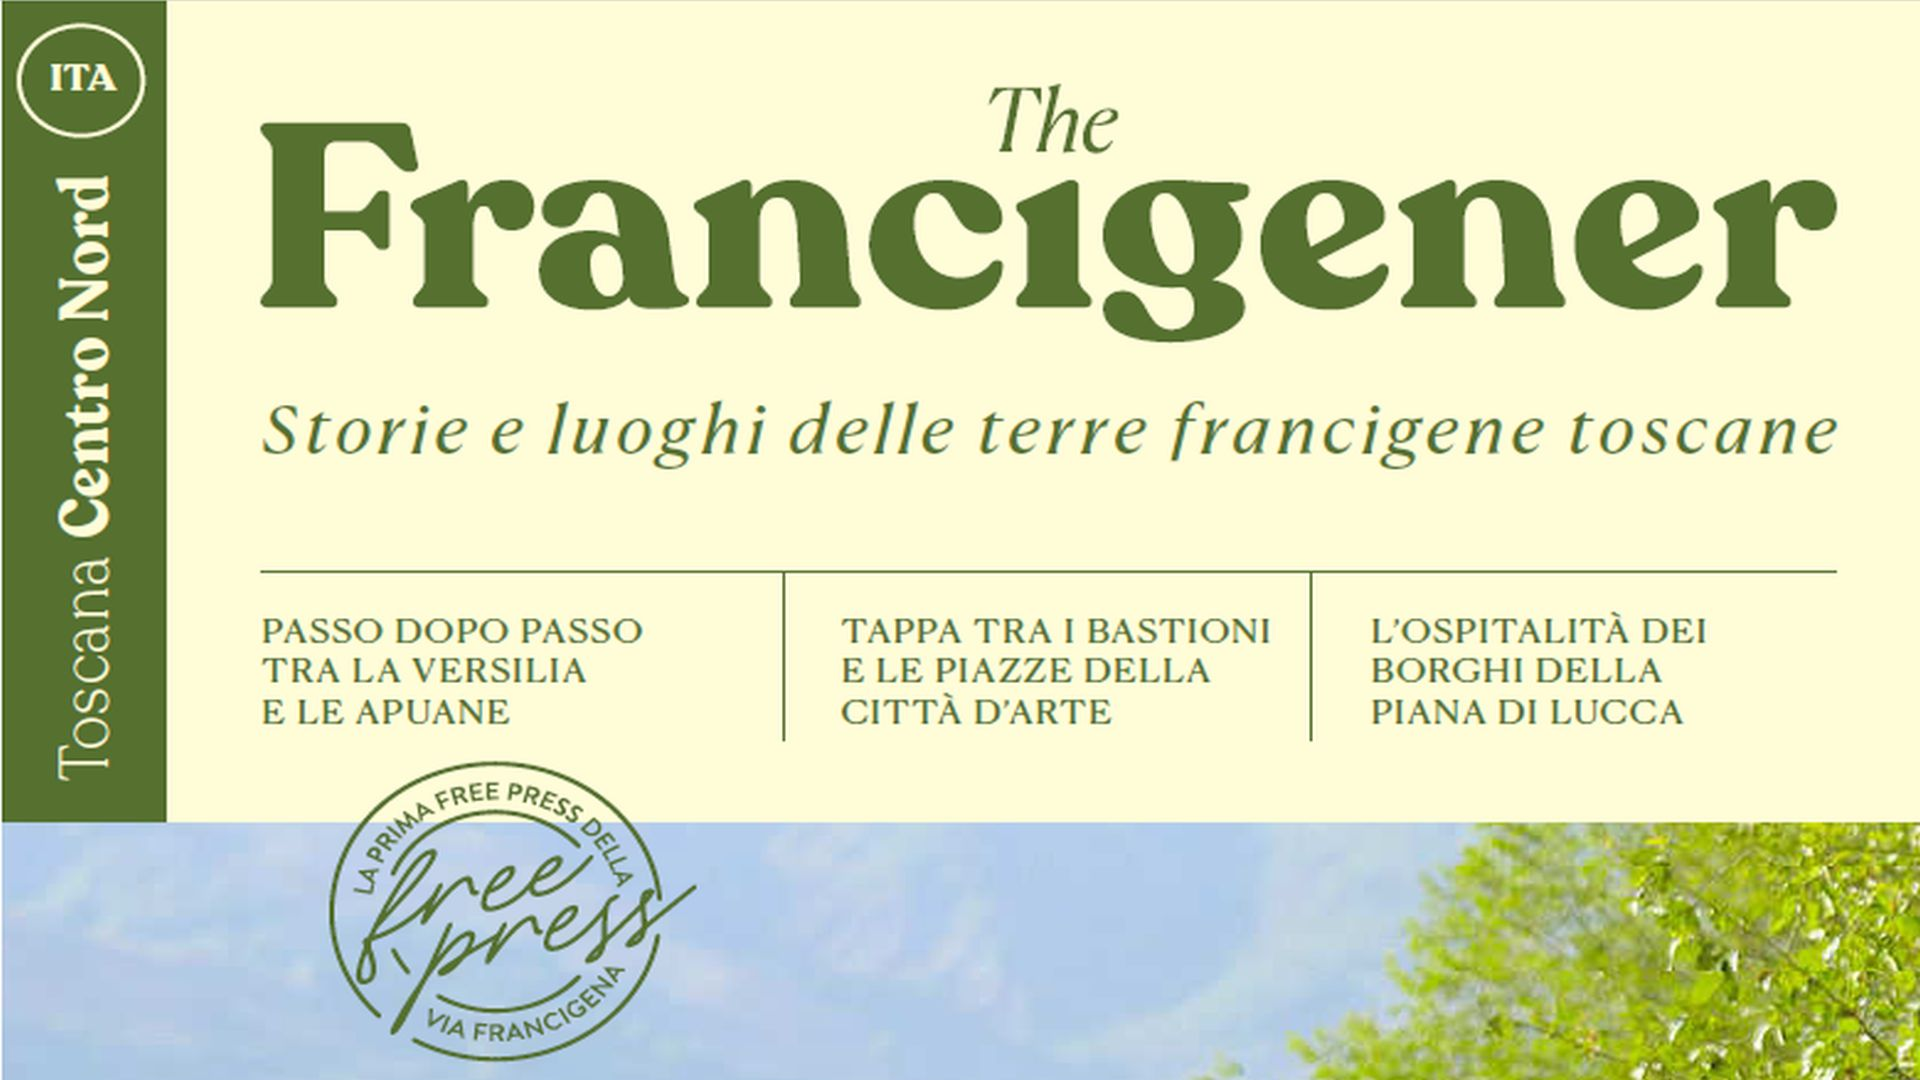 image of the francigener magazine